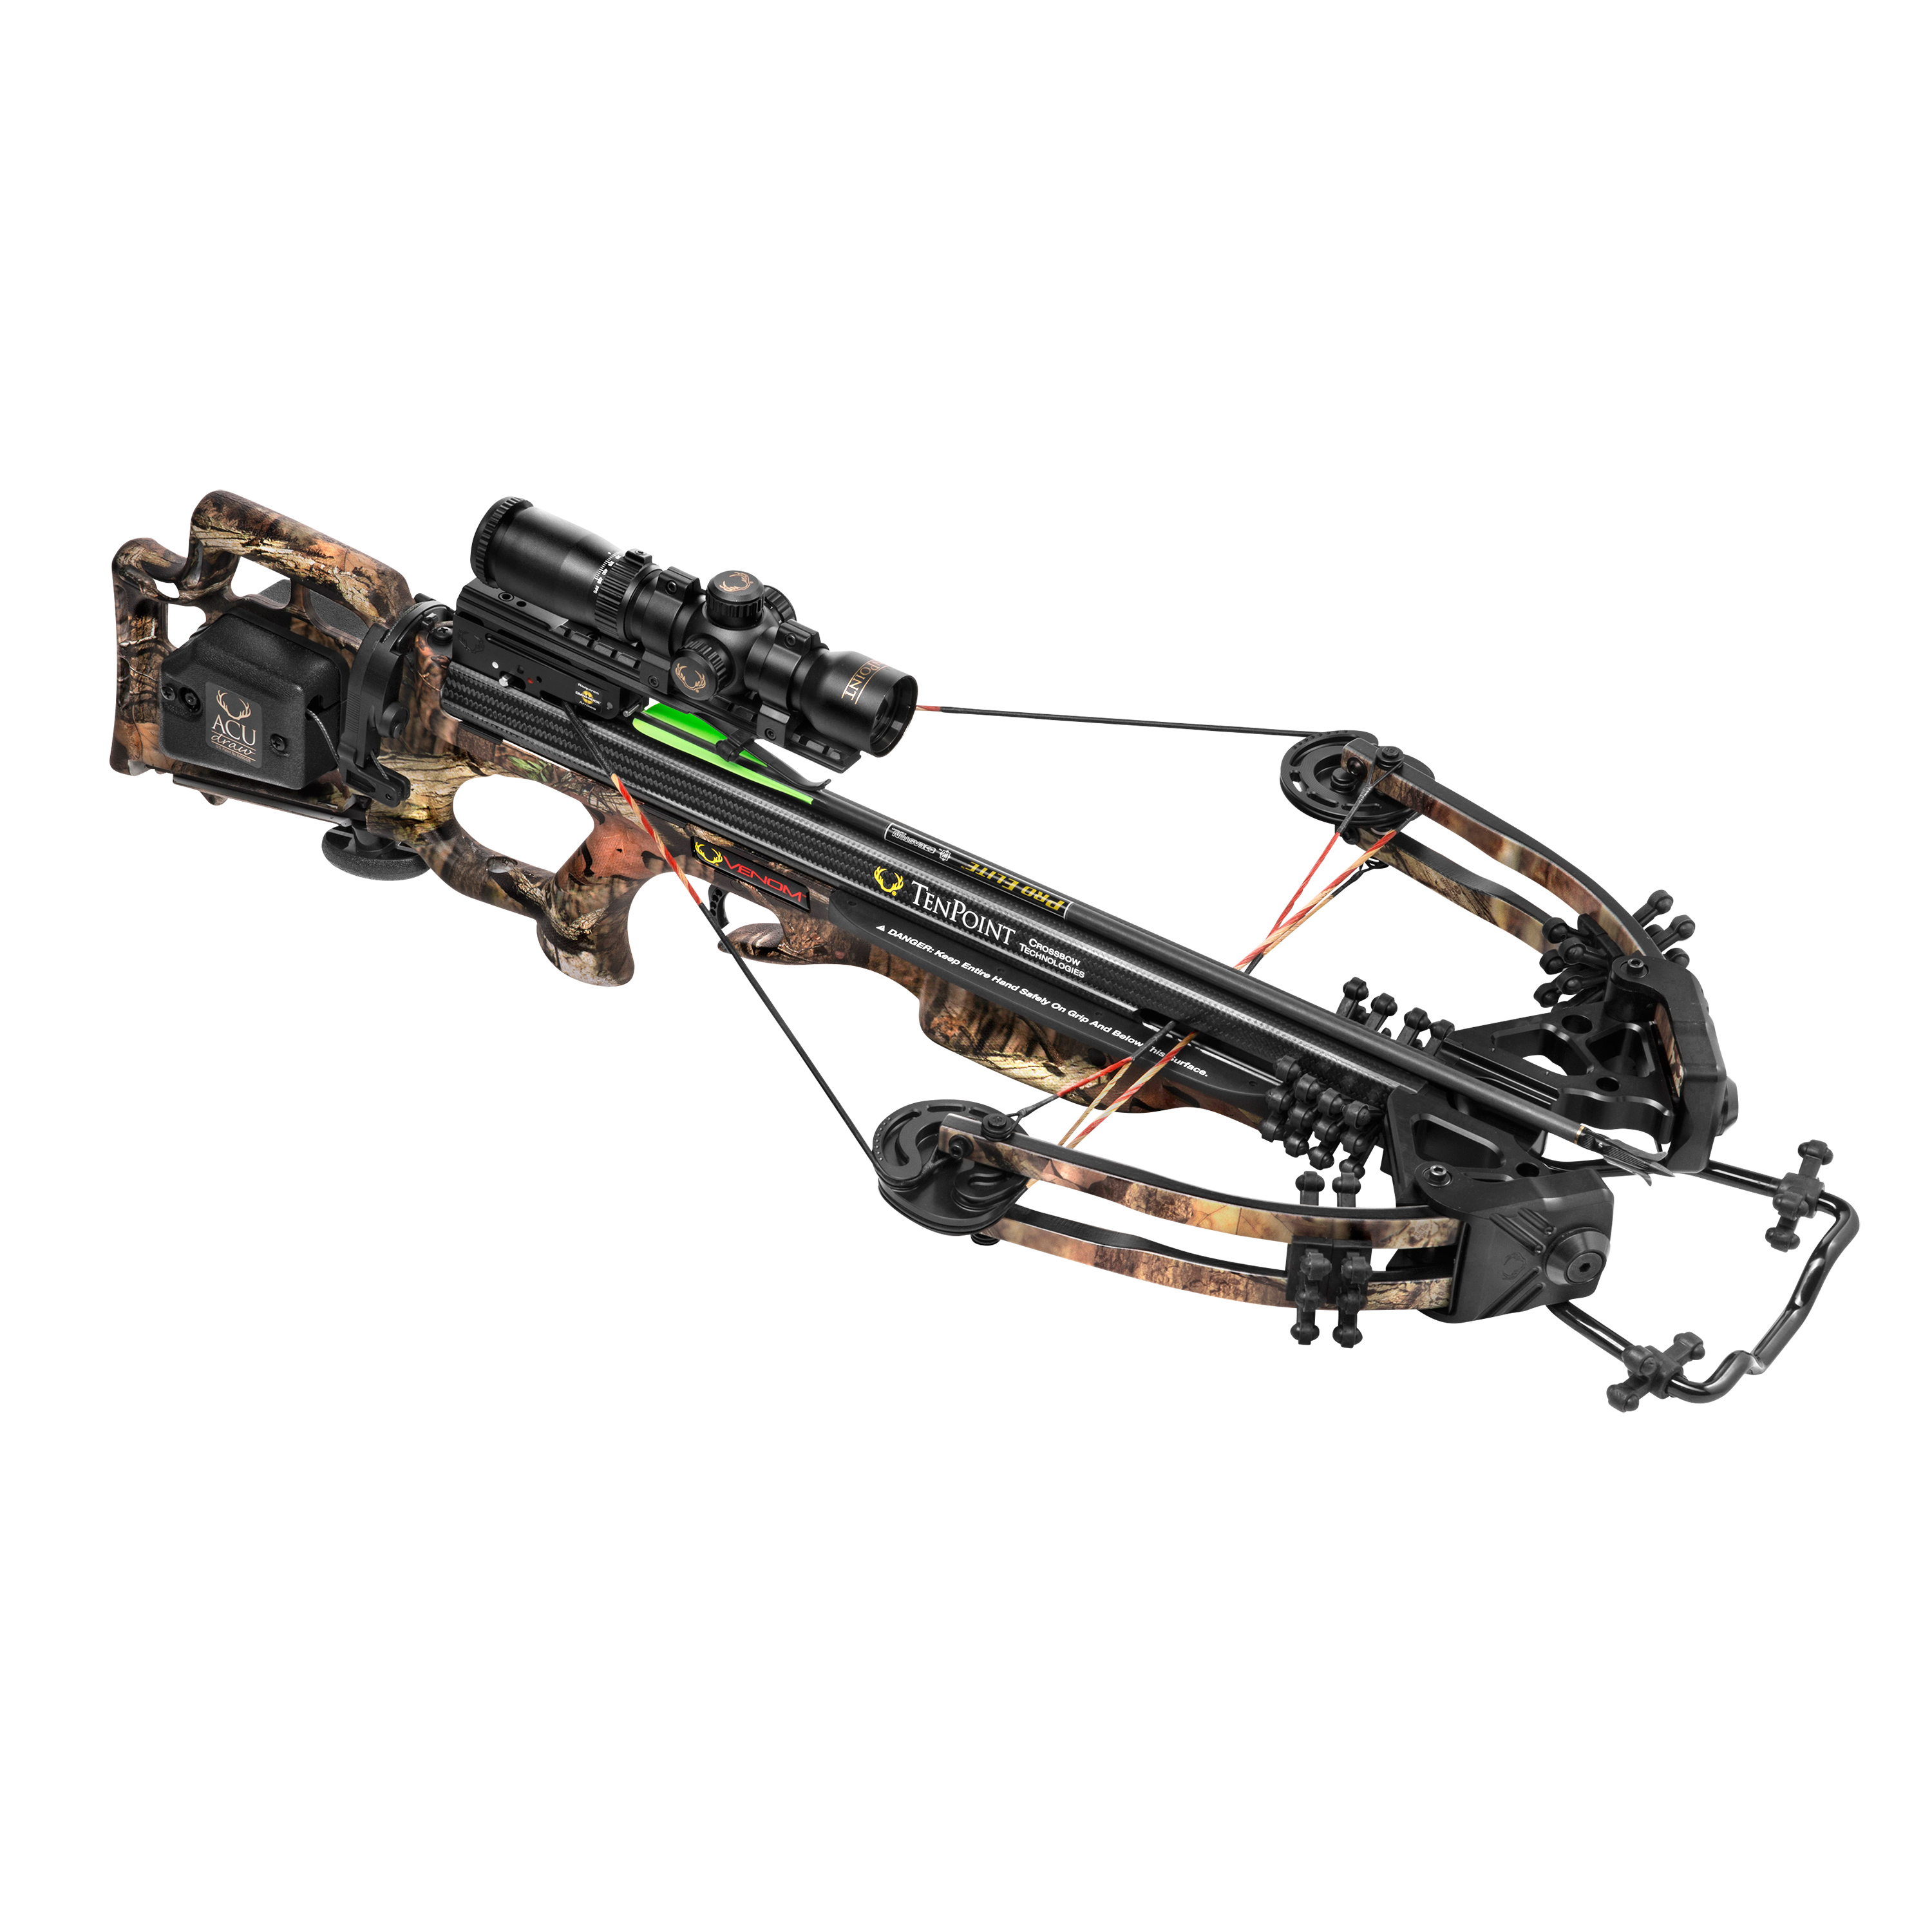 TenPoint Crossbow Technologies Venom w/Package, Mossy Oak Infinity Camo CB14007-6811